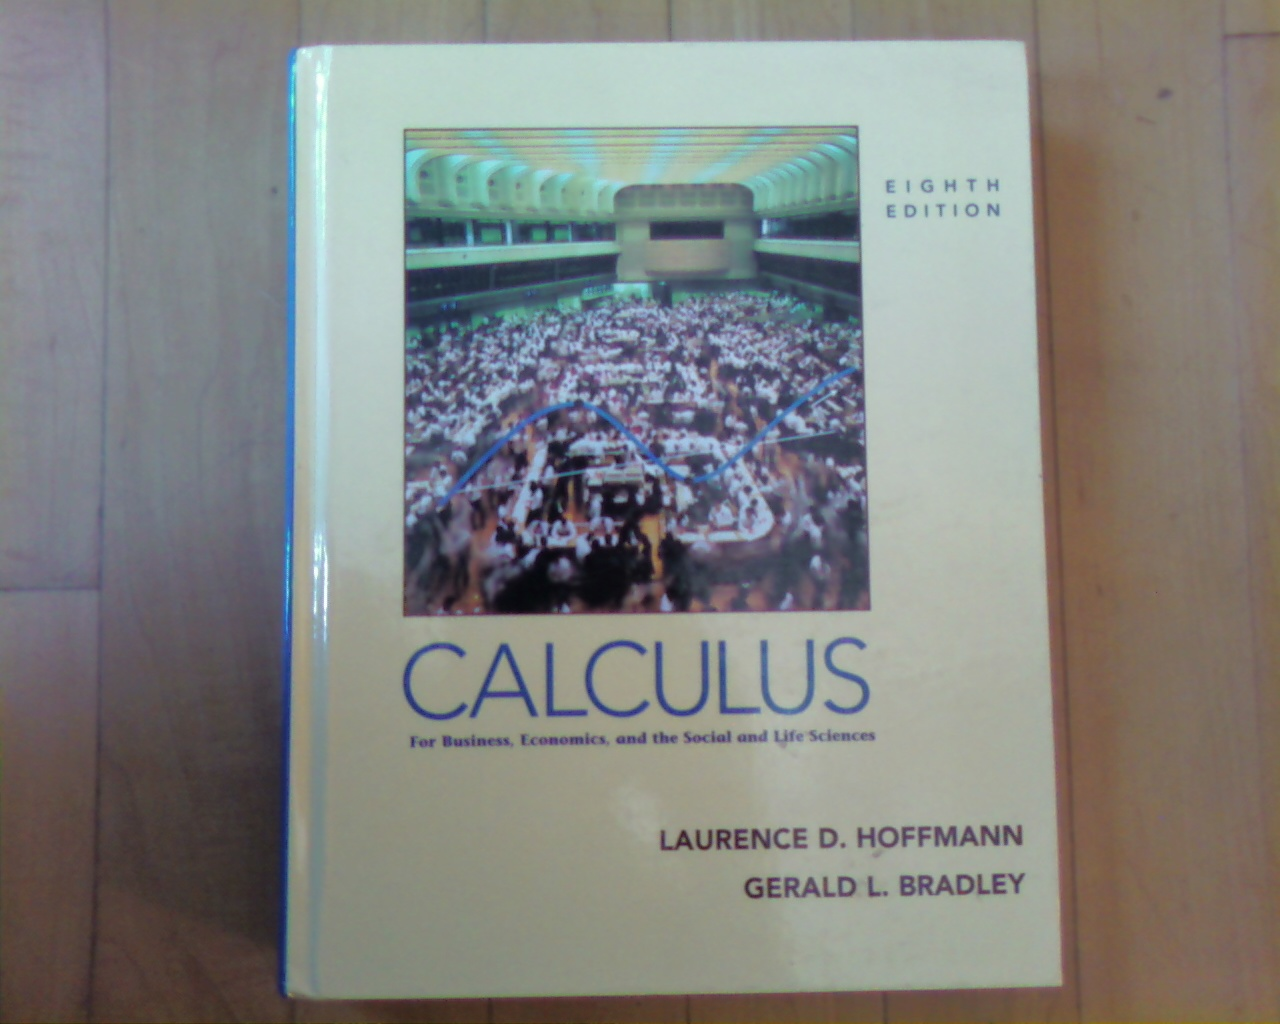 integral calculus for business record Calculus, branch of mathematics concerned with the calculation of instantaneous rates of change (differential calculus) and the summation of infinitely many small factors to determine some whole (integral calculus) the roots of calculus lie in some of the oldest geometry problems on record the egyptian rhind papyrus.